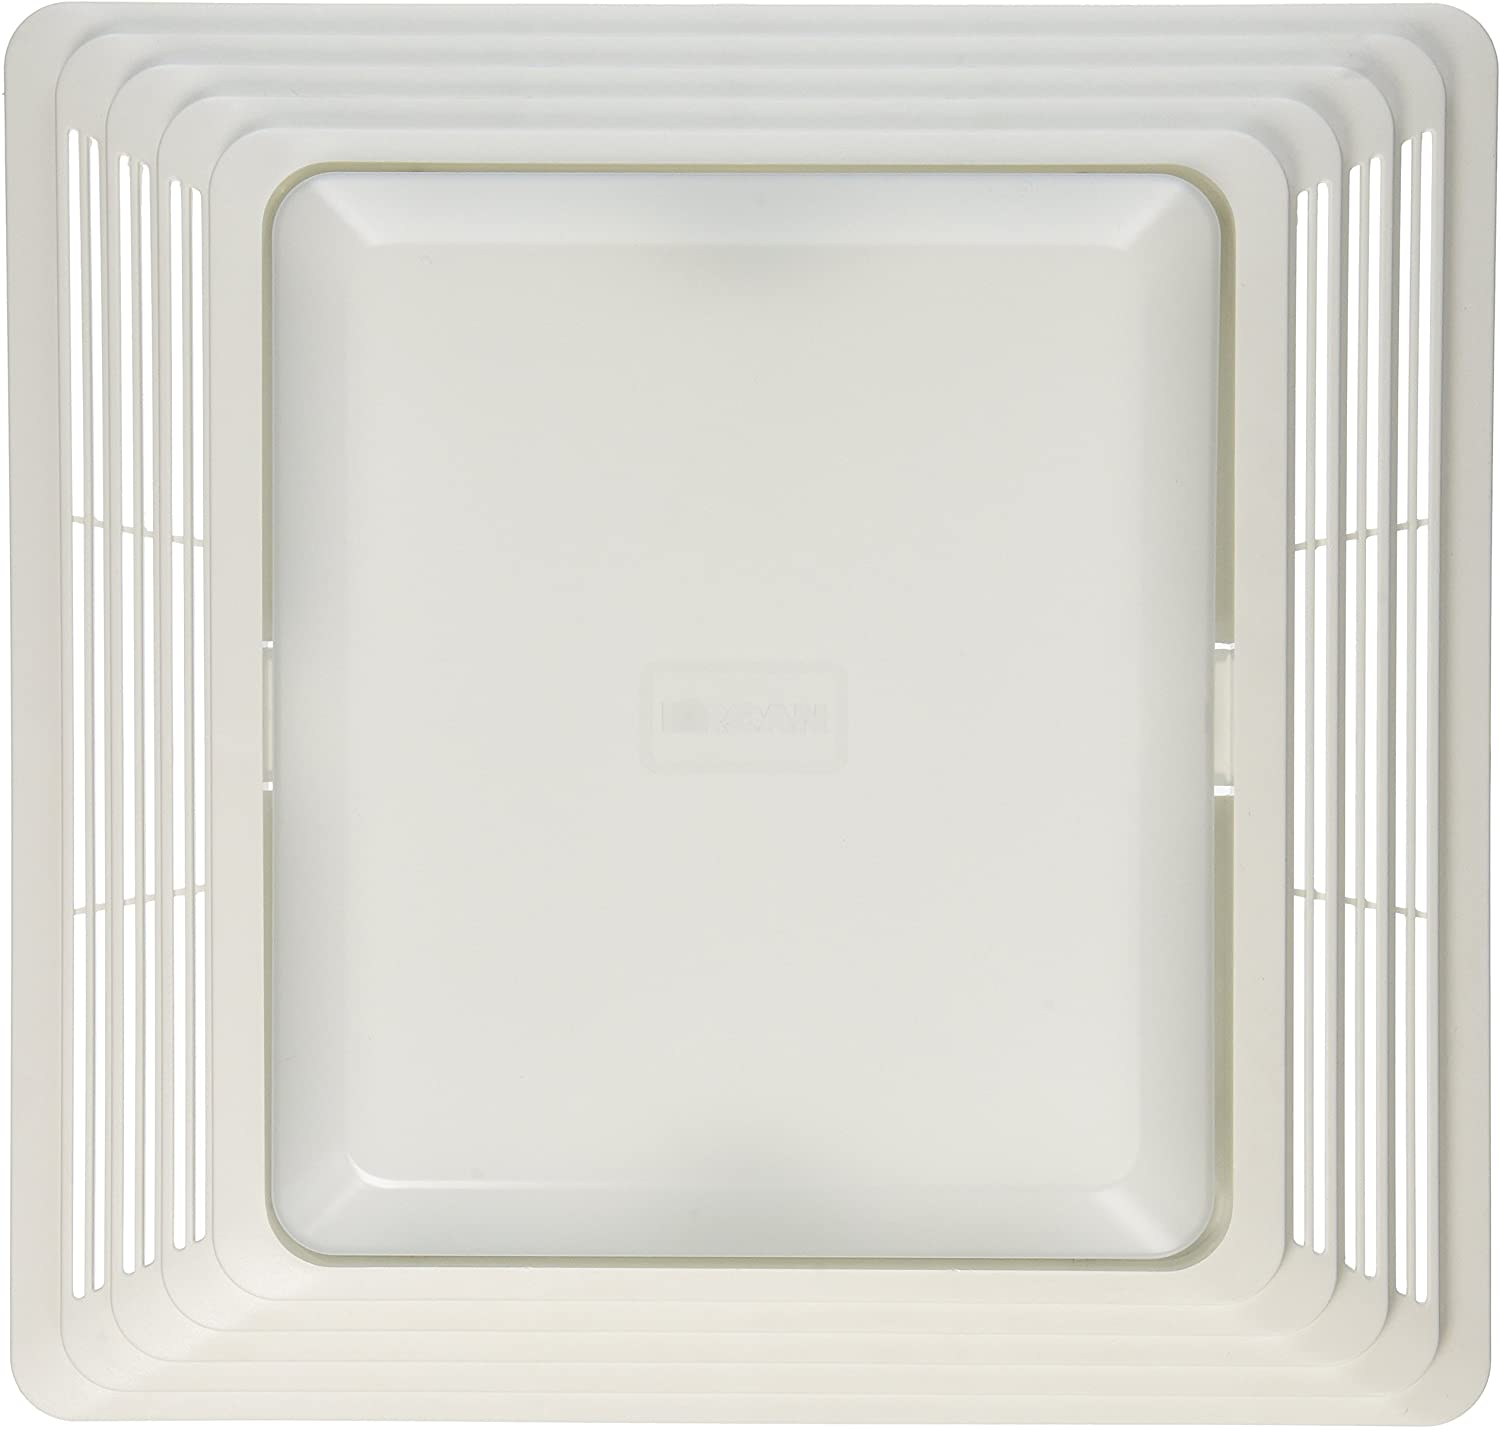 Broan Nutone Plastic Exhaust Fan Grille with Lens